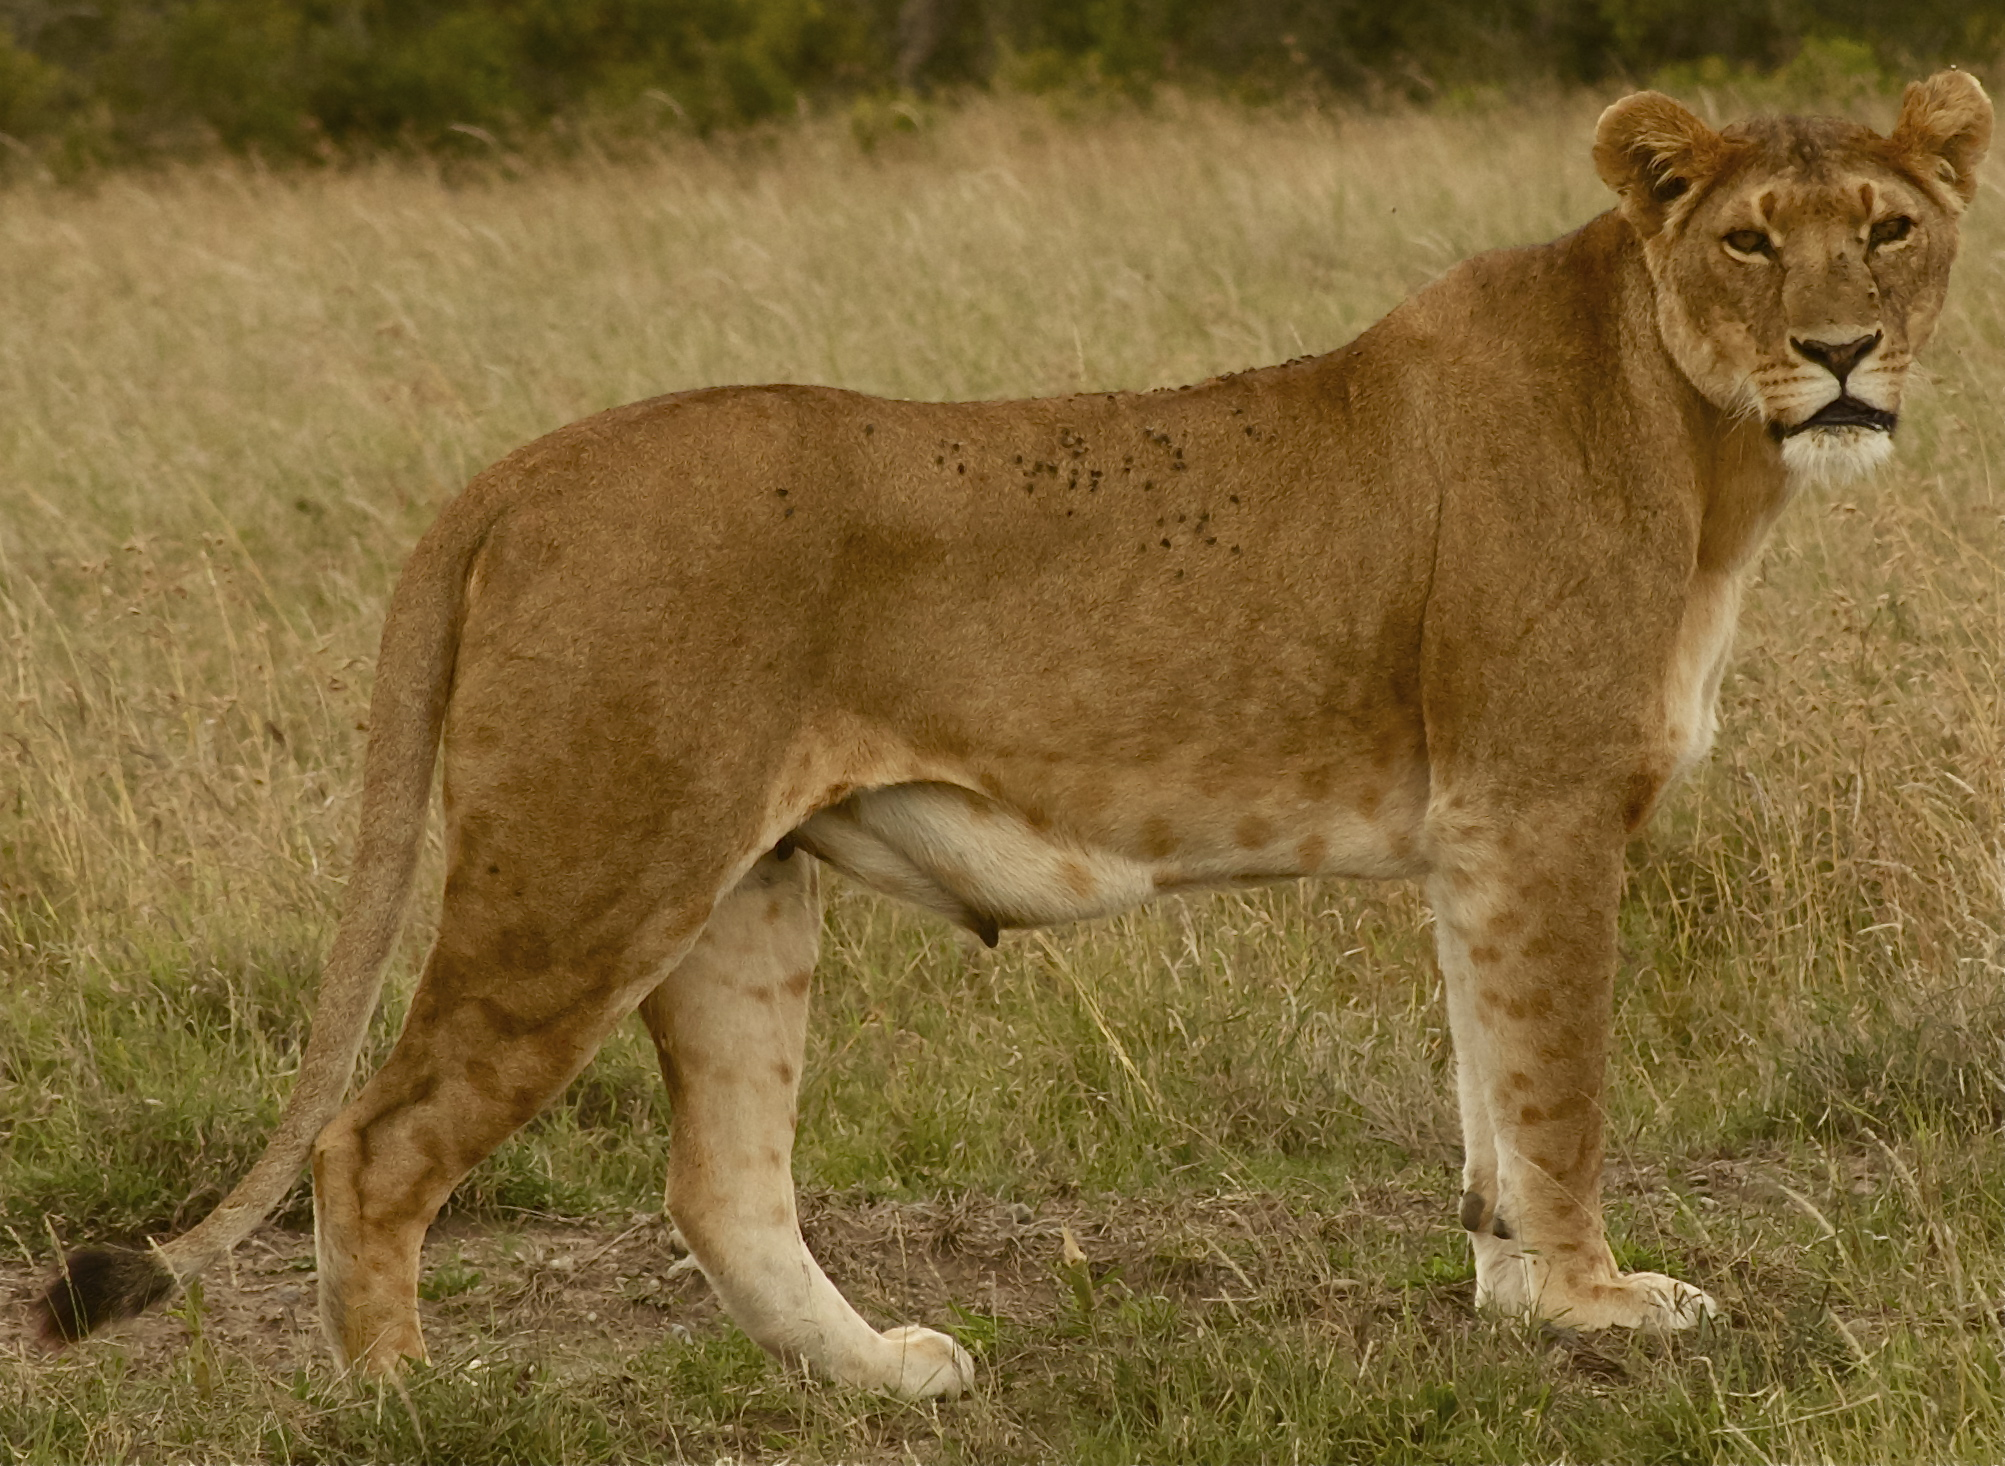 Following Lioness on the hunt